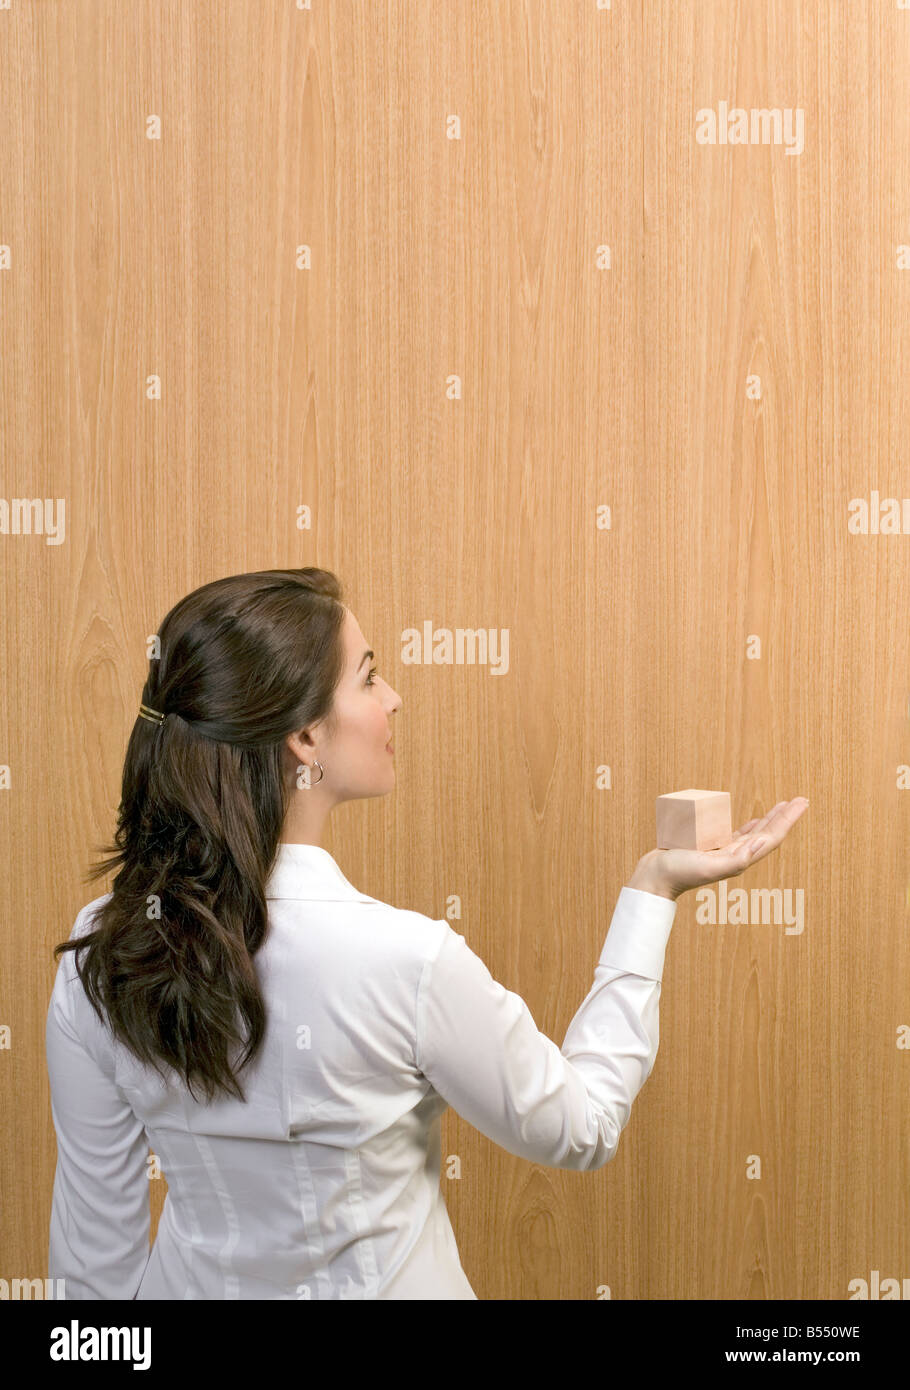 woman holds wooden cube - Stock Image